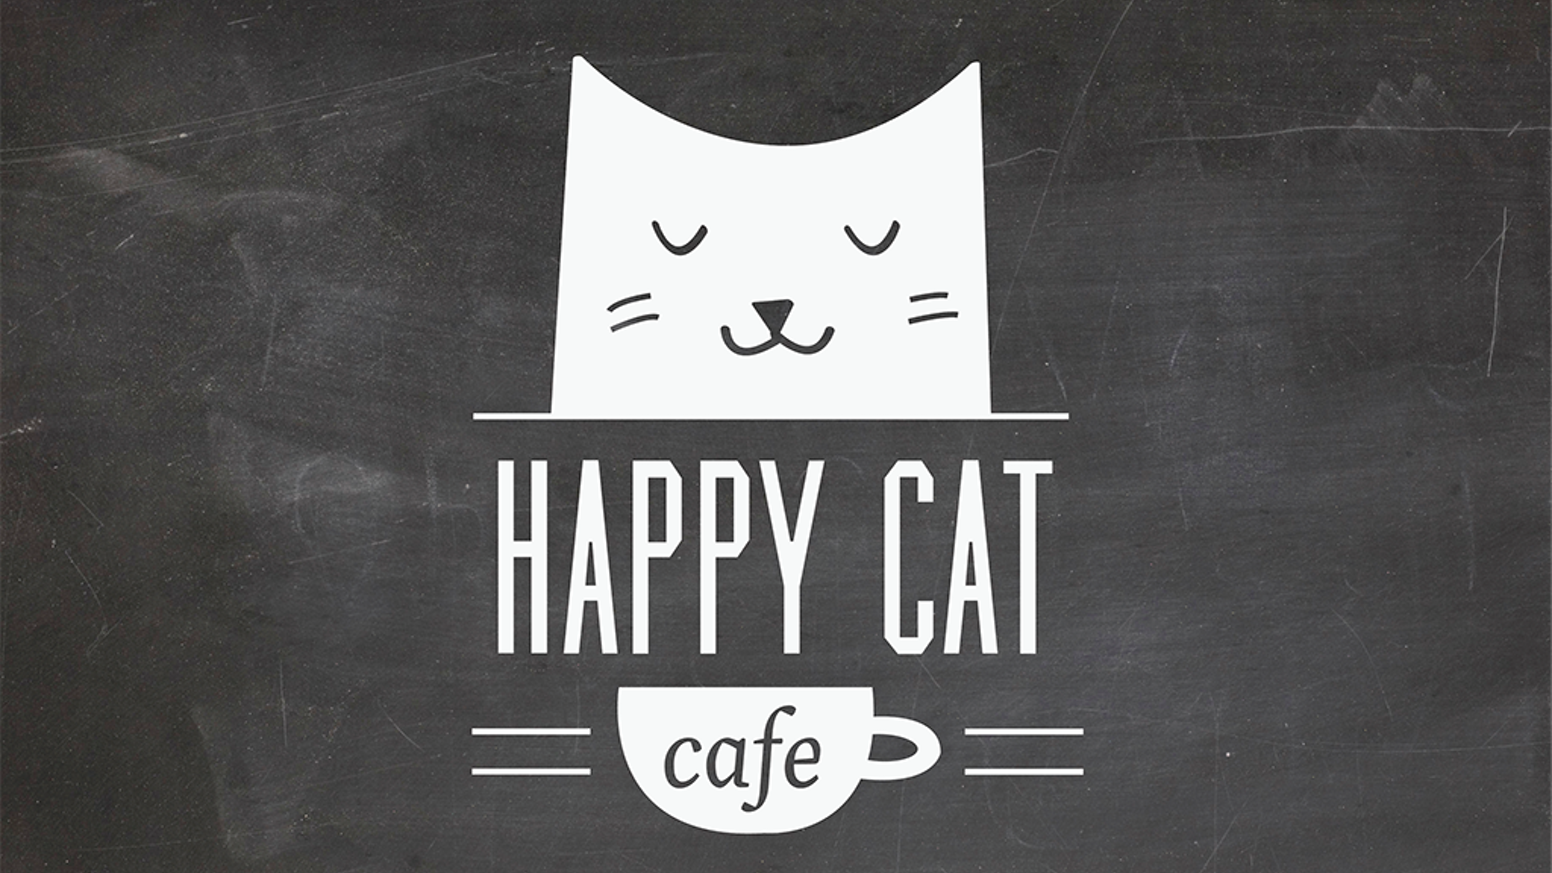 HALF Coffee House, HALF Animal Shelter, ALL FUN! A revolutionary way to adopt your next pet or just relax with fellow cat lovers.